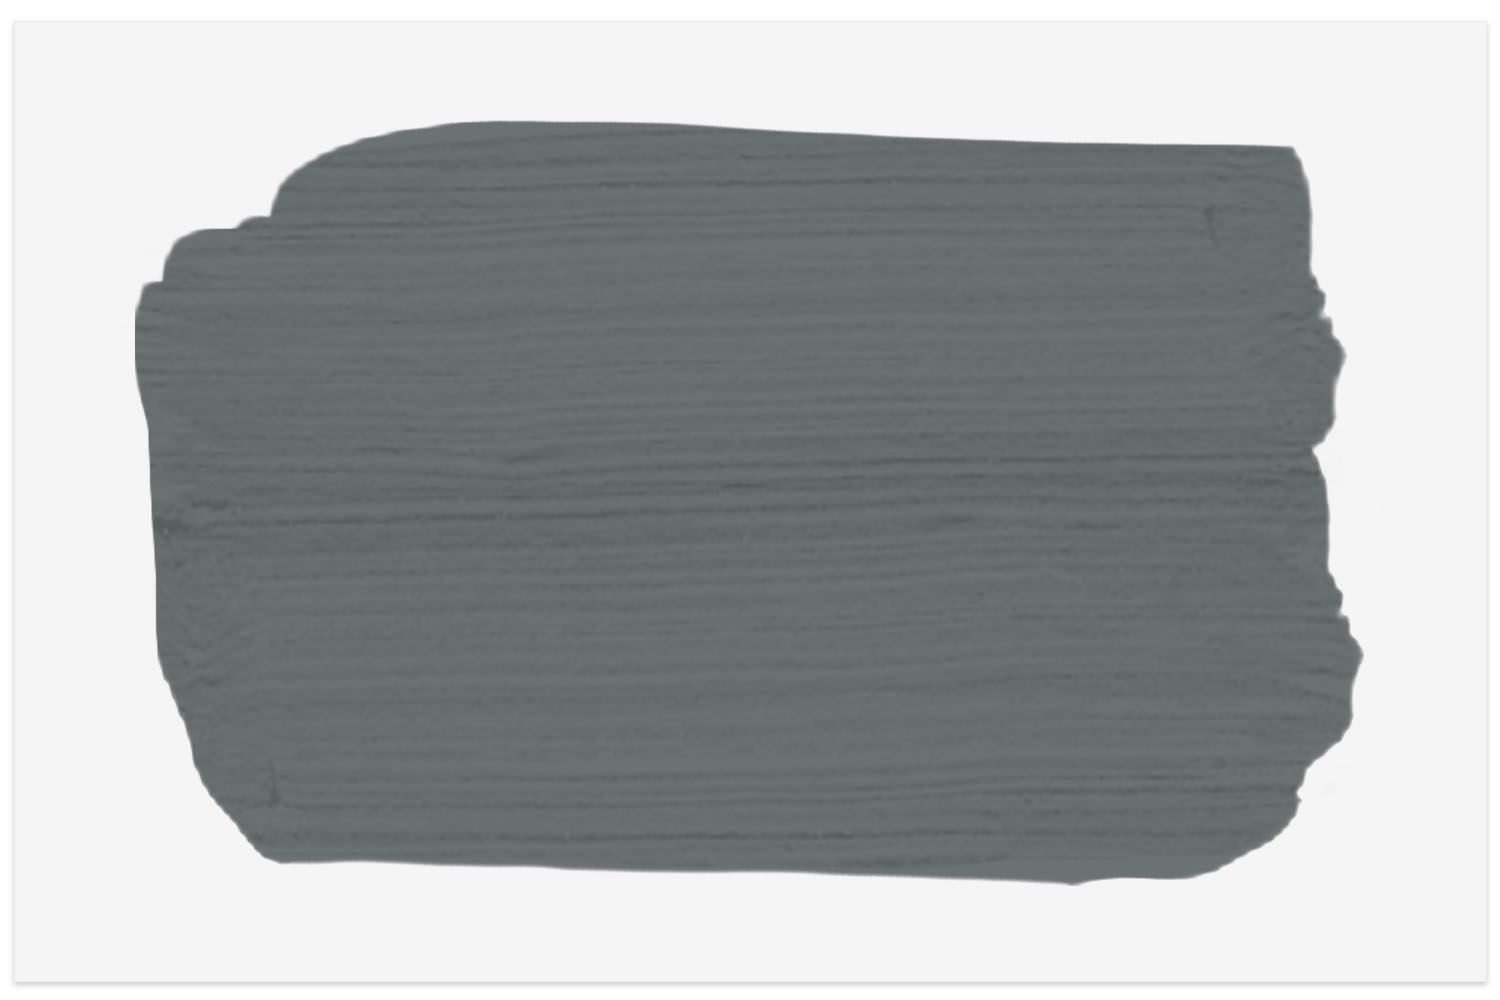 The Spruce paint color swatch in Stormy Skies